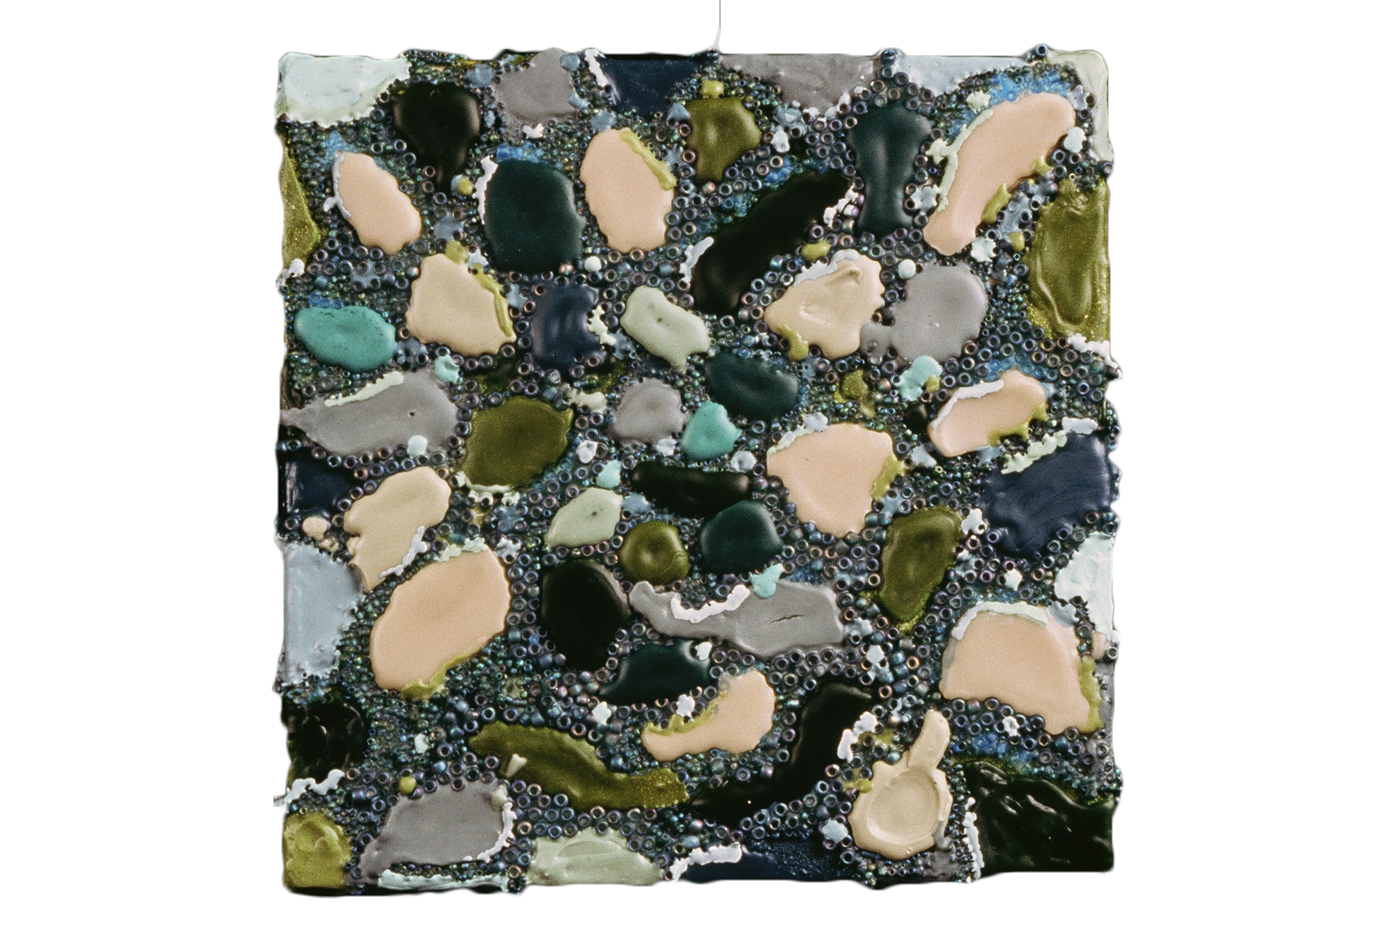 Chameleon, 1999, encaustic, beads, and urethane on canvas, 8 x 8 inches